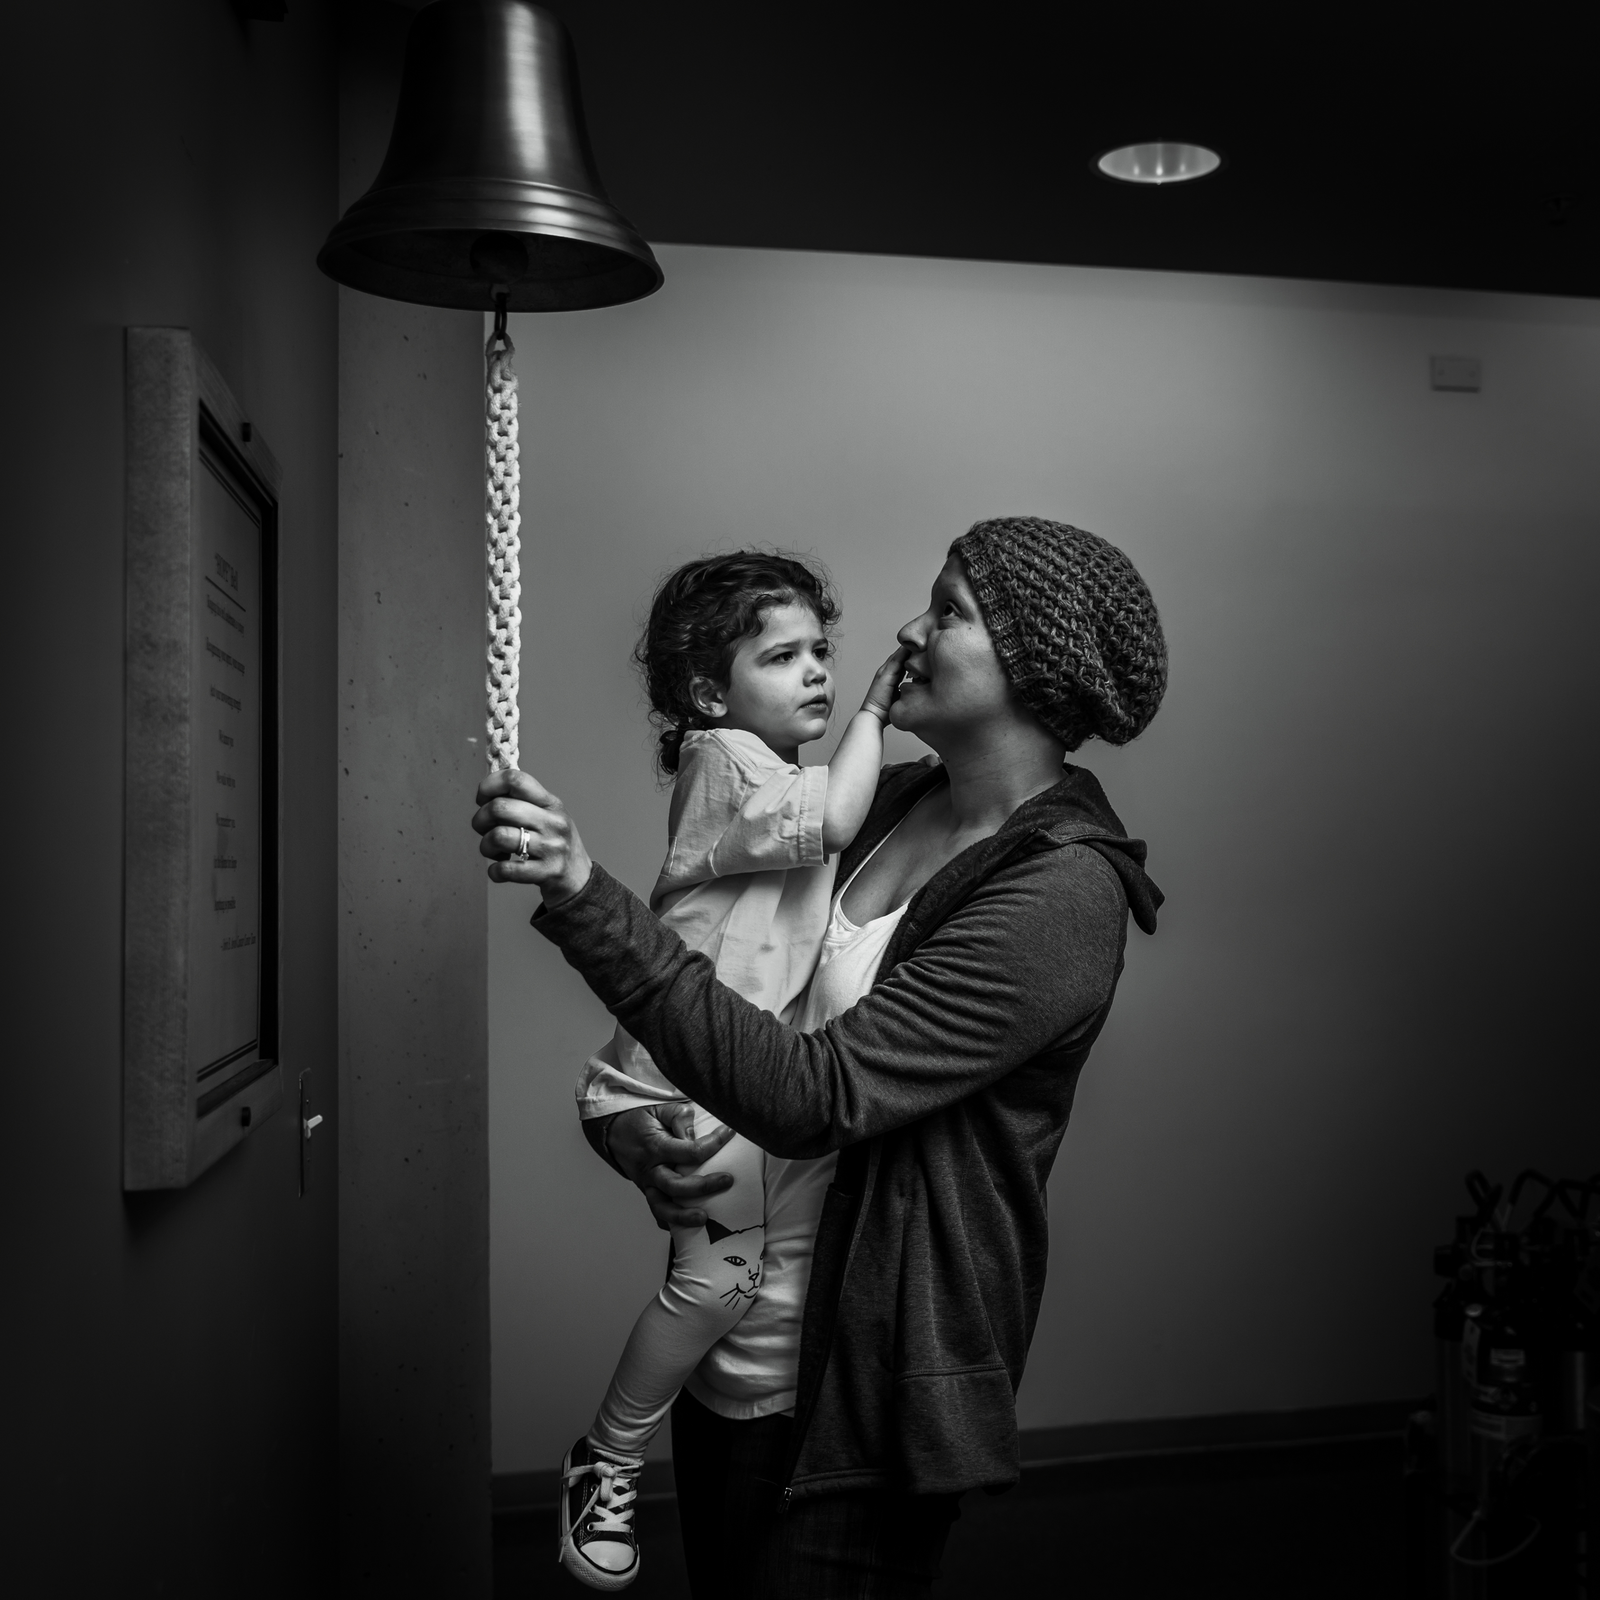 family photographer, columbus, ga, atlanta, documentary, photojournalism, chemotherapy, chemo, breastcancer, ringing bell_6256